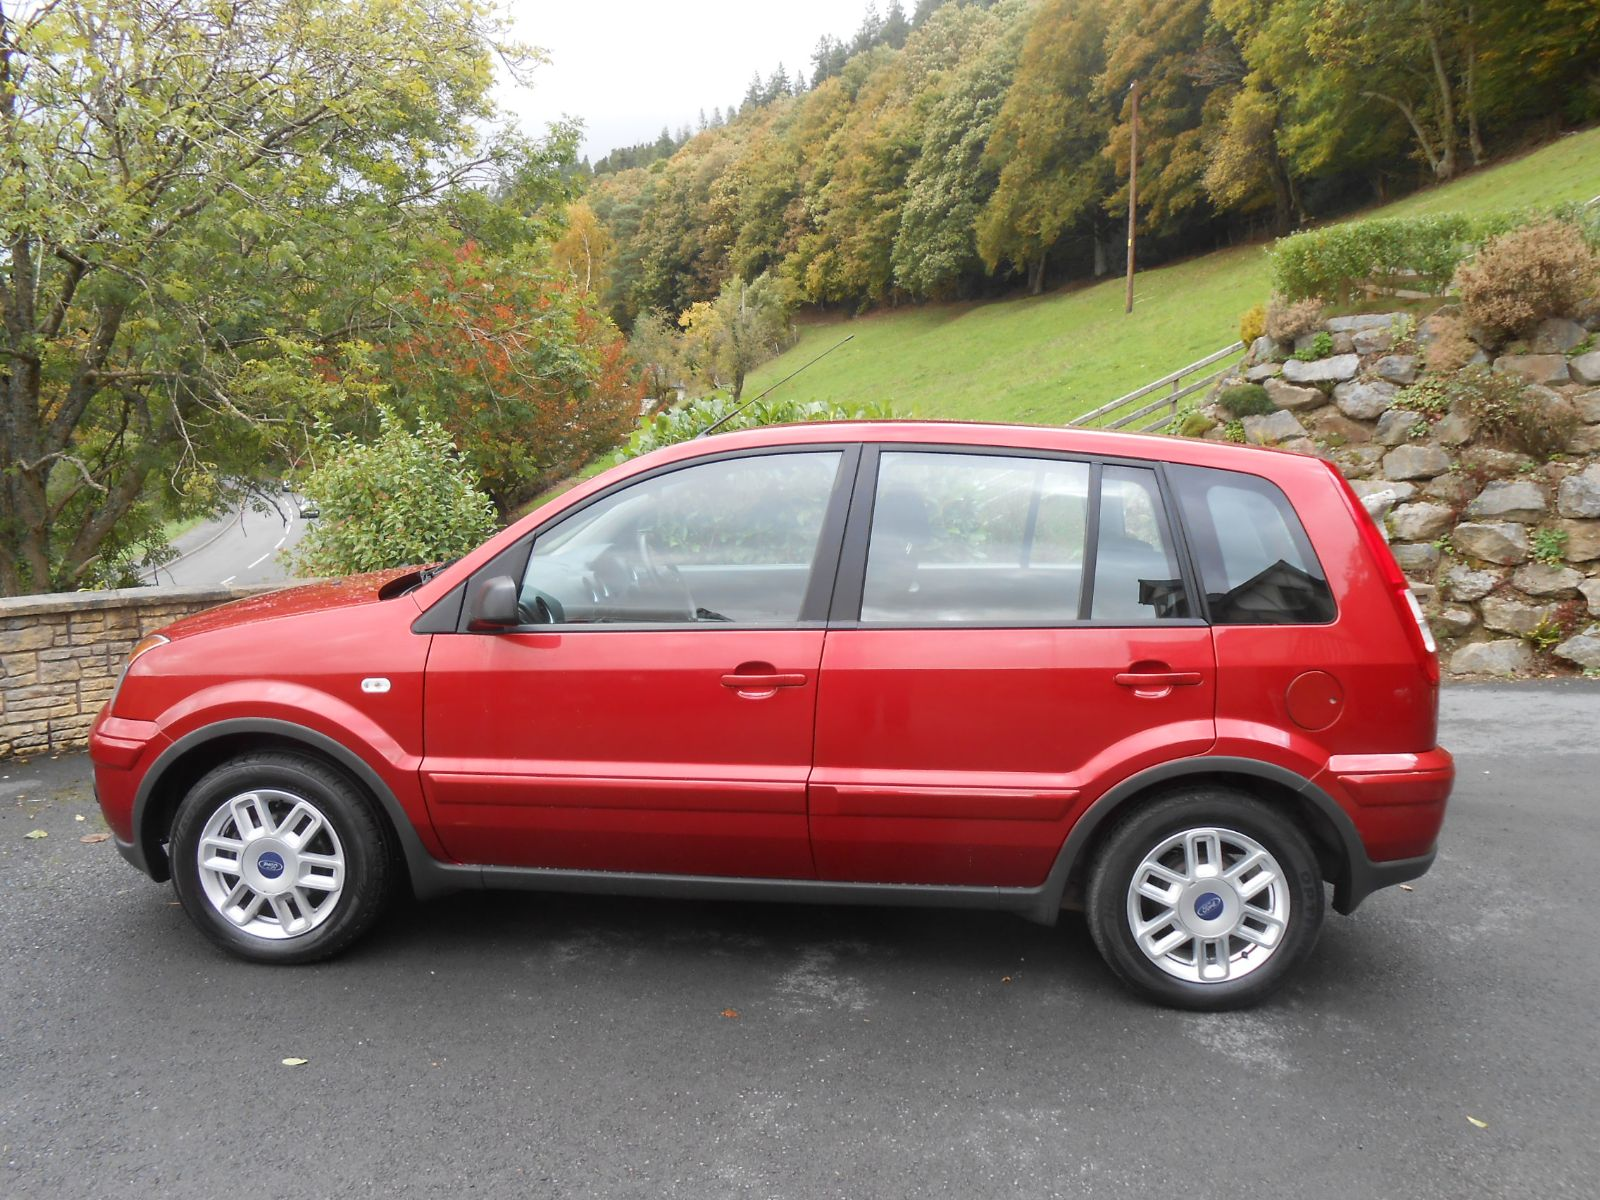 Ford Fusion 1 6 Zetec Auto Car For Sale Llanidloes Powys